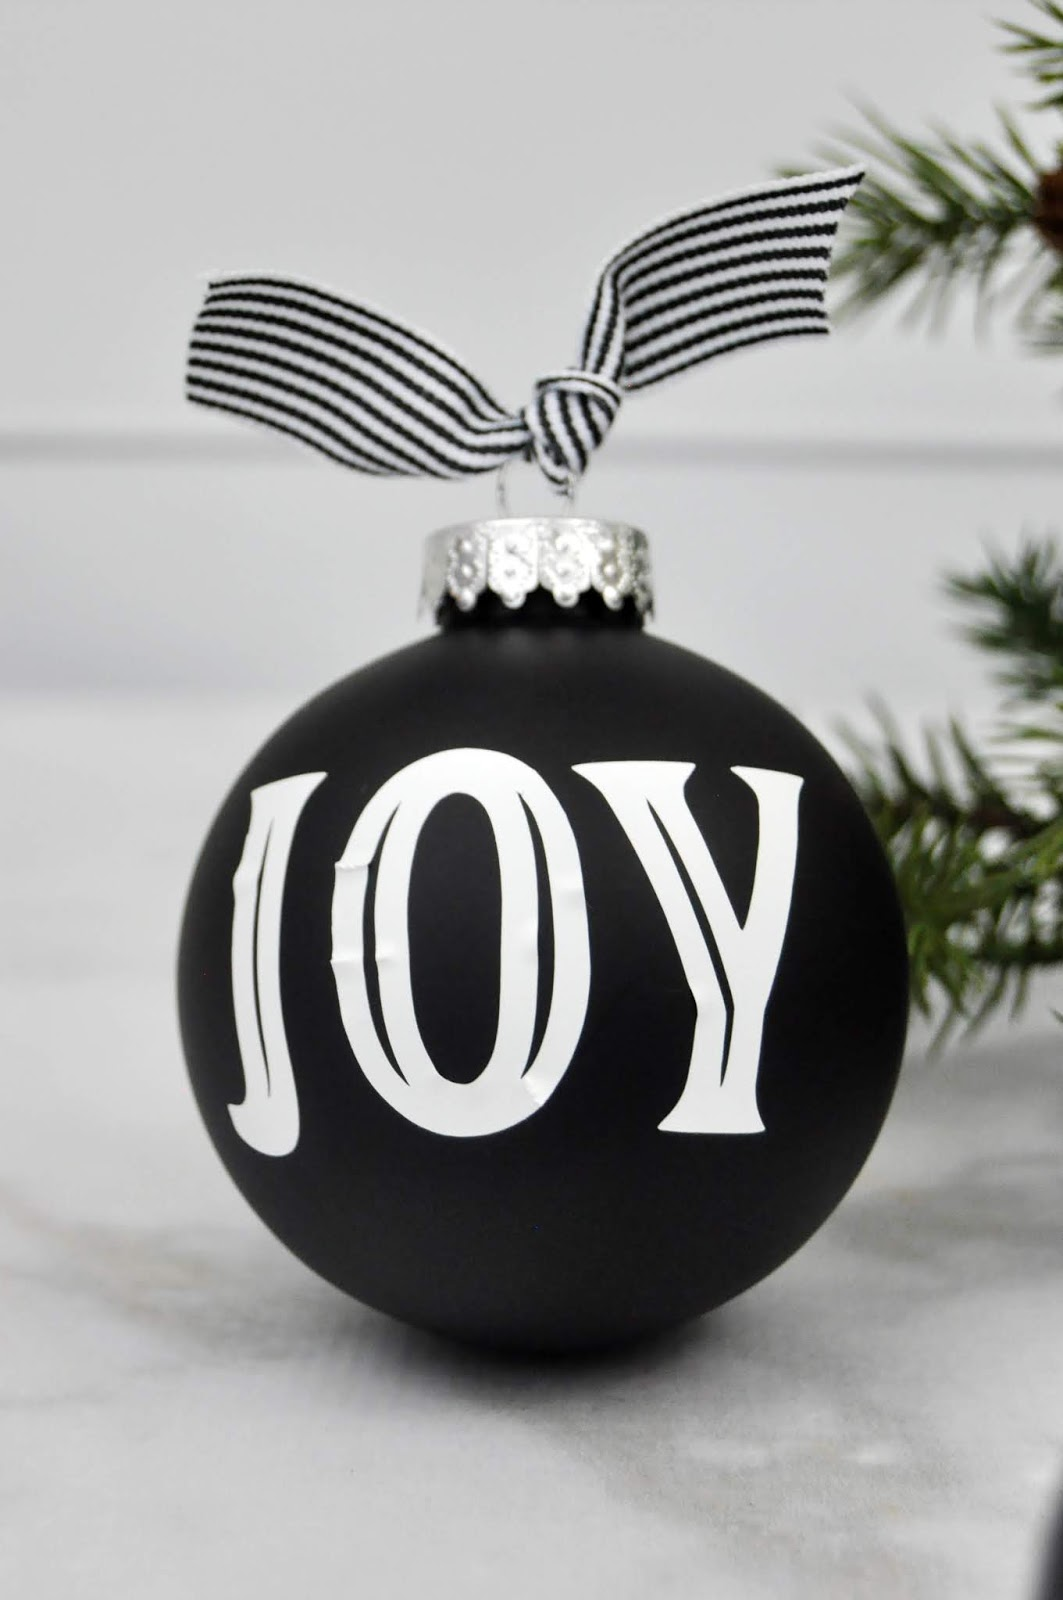 Chalkboard ornaments with white vinyl designed by Jen Gallacher using a Silhouette die cut machine. #diecutting #christmasornament #jengallacher #christmascraft